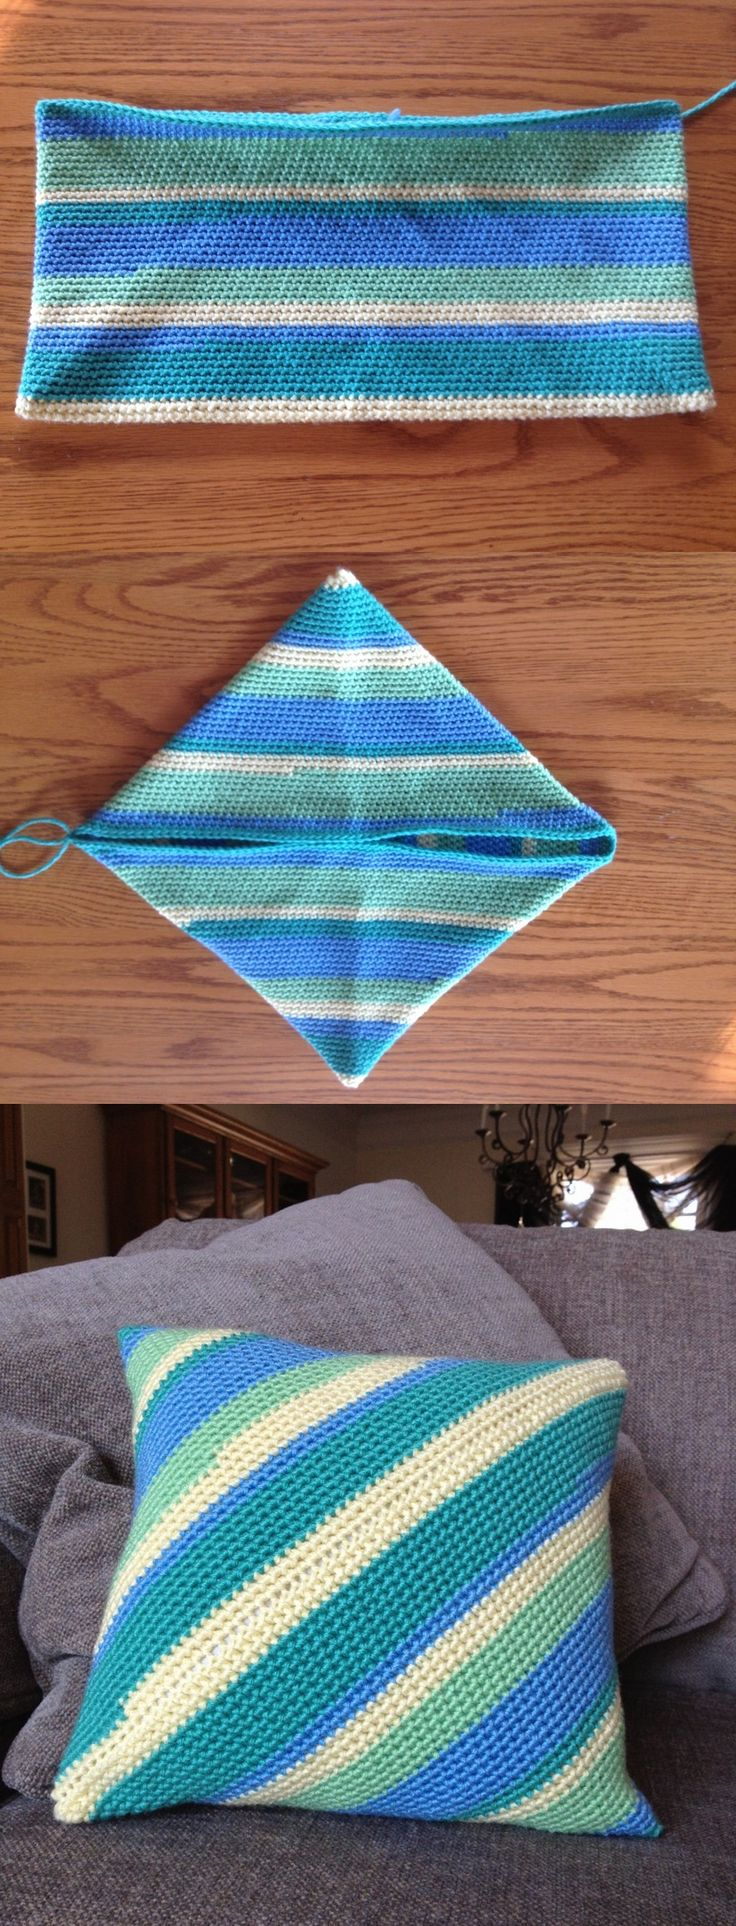 "Potholder pillow, free pattern ~ This is the same pattern used for making the classic potholder - very easy & fast. 12"" pillow uses about 7 oz yarn, hook size 'H', worked in all SC. Set-up is actually crocheting in the round. Keep going until, when folded diagonally (2nd pic), both sides meet. Stuff with a pre-made pillow form & slip stitch closed. ✭Teresa Restegui http://www.pinterest.com/teretegui/ ✭"